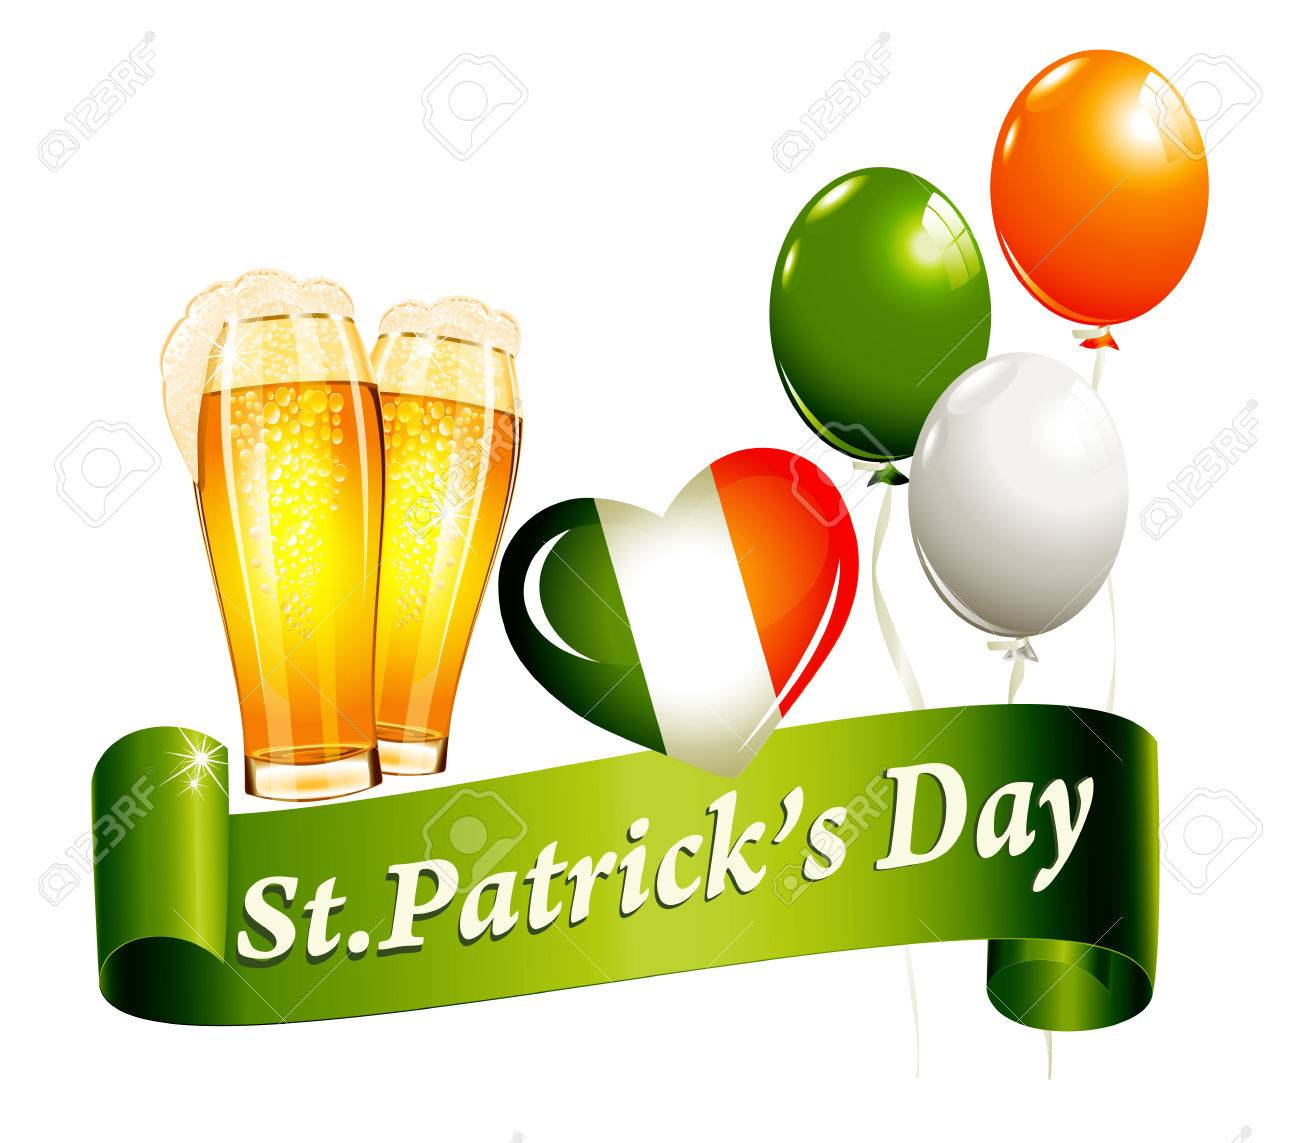 St.Patrick's Day banner Stock Vector - 24538919